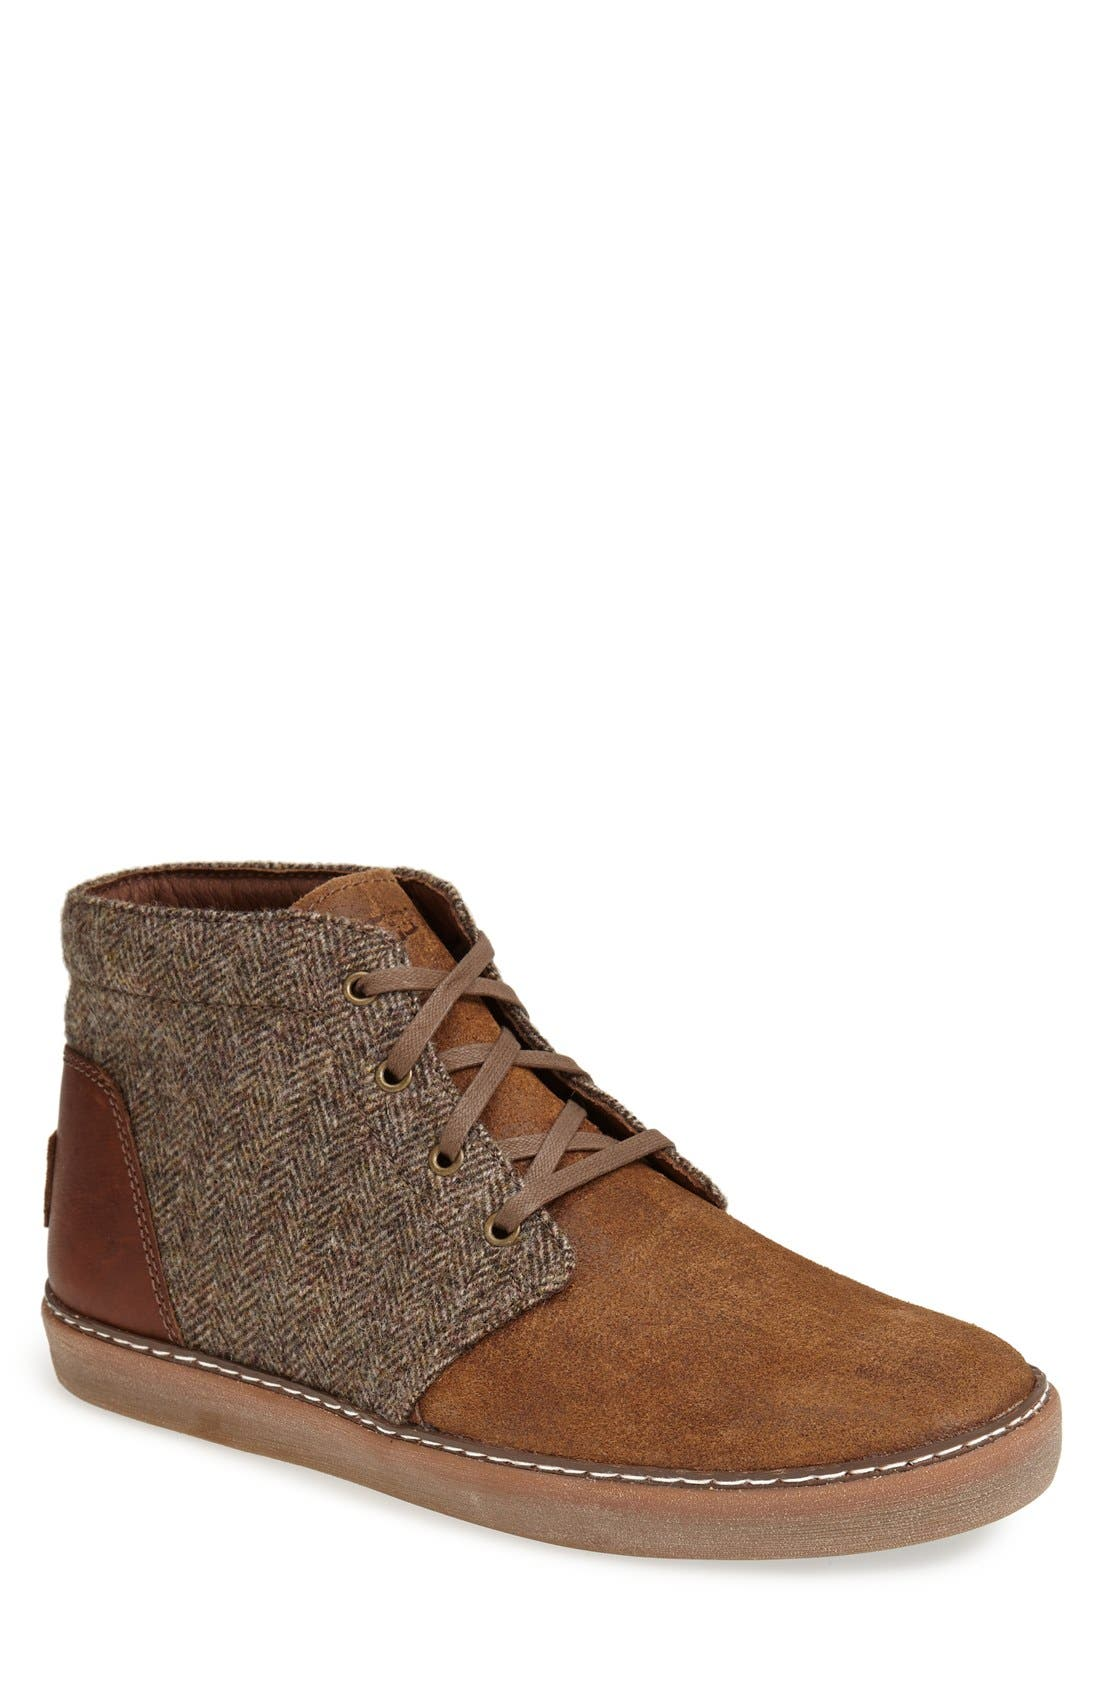 Alternate Image 1 Selected - UGG® 'Alin' Tweed Chukka Boot (Men)